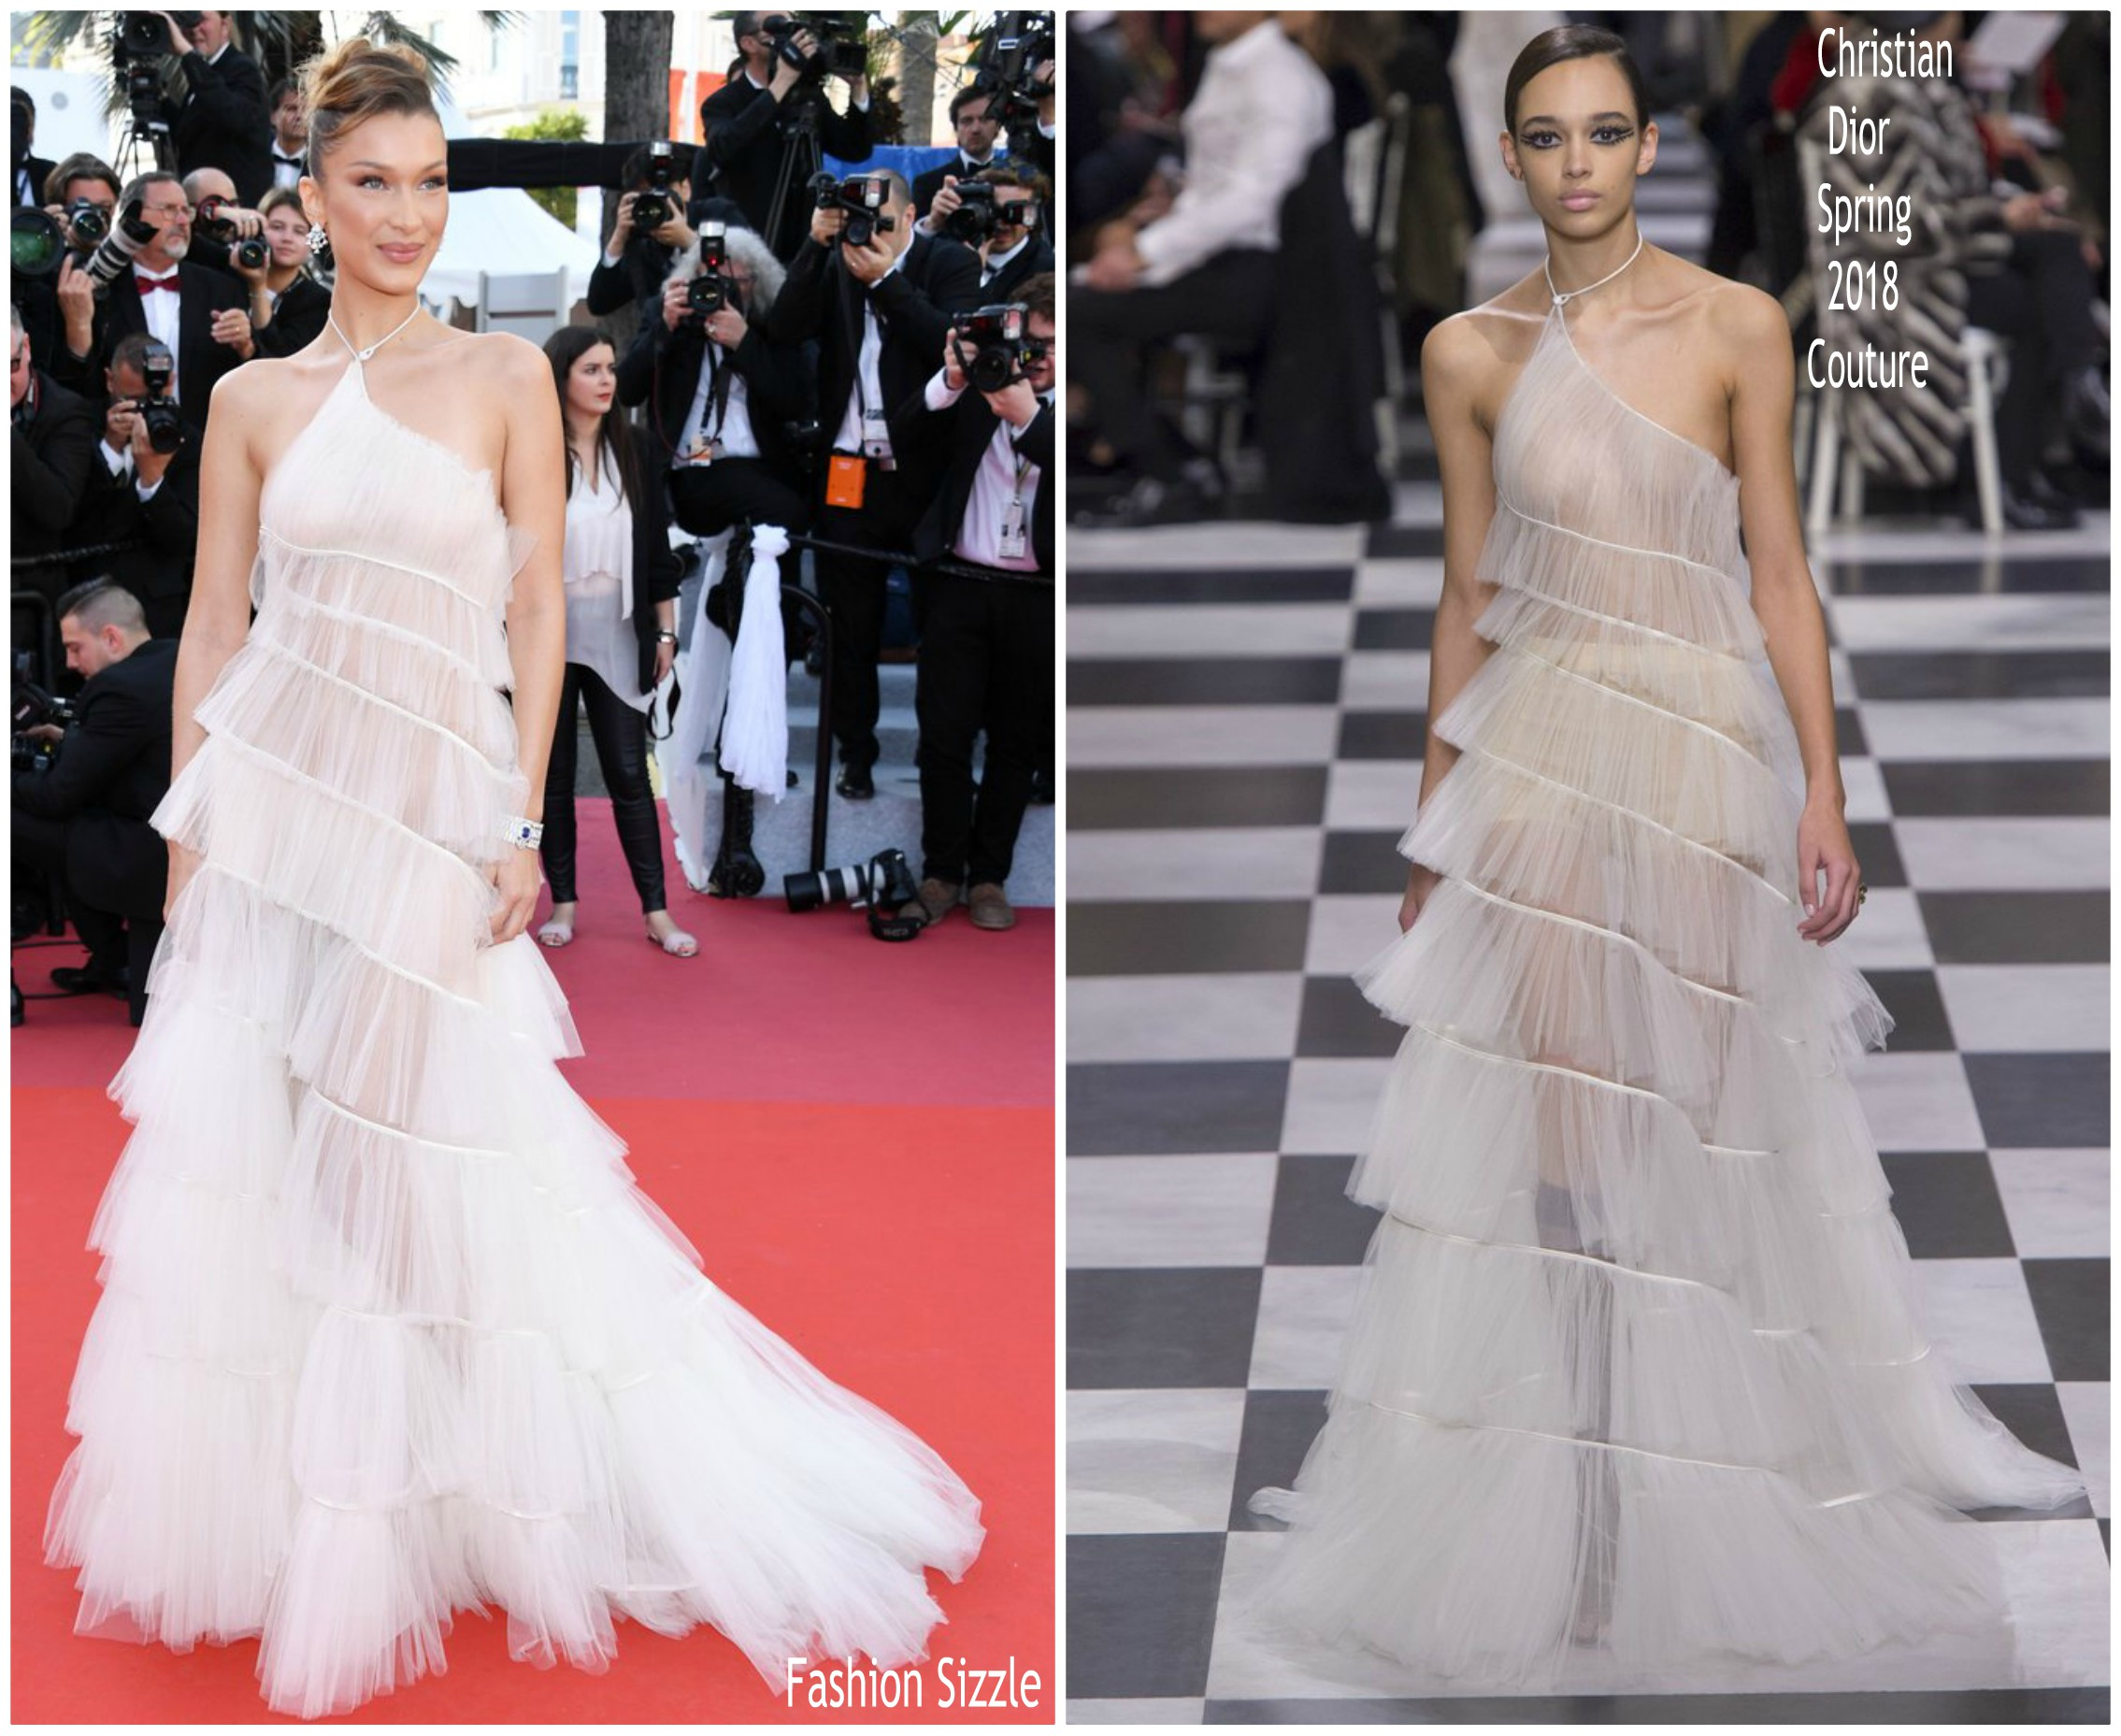 bella-hadid-in-christian-dior-rocketman-cannes-film-festival-premiere